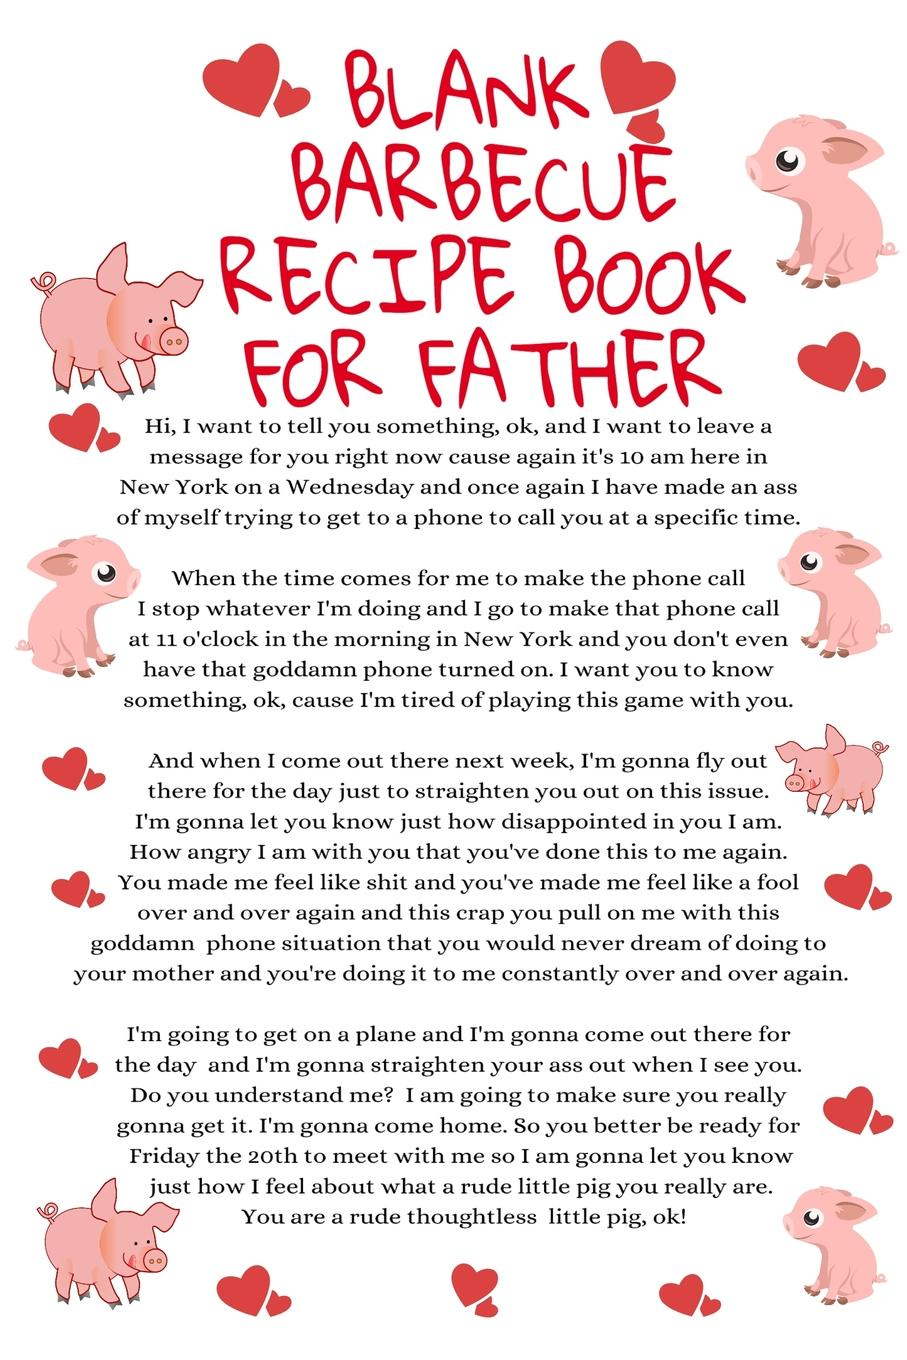 Jennifer Wellington Blank Barbecue Recipe Book For Father. Funny Father Cookbook Notepad Book - Parody Dad Gift Journal To Write In Grilling Recipes For Fathers With Temper, 6x9 Inches Paper With Black Lines, 120 Pages Ruled Diary For Dad, Boyfriend, Husband, Son, ... journal jungle publishing my recipe book 100 recipe pages conversion tables quotes and more make your own cookbook using this blank recipe book 8 x 10 inches pink purple and orange